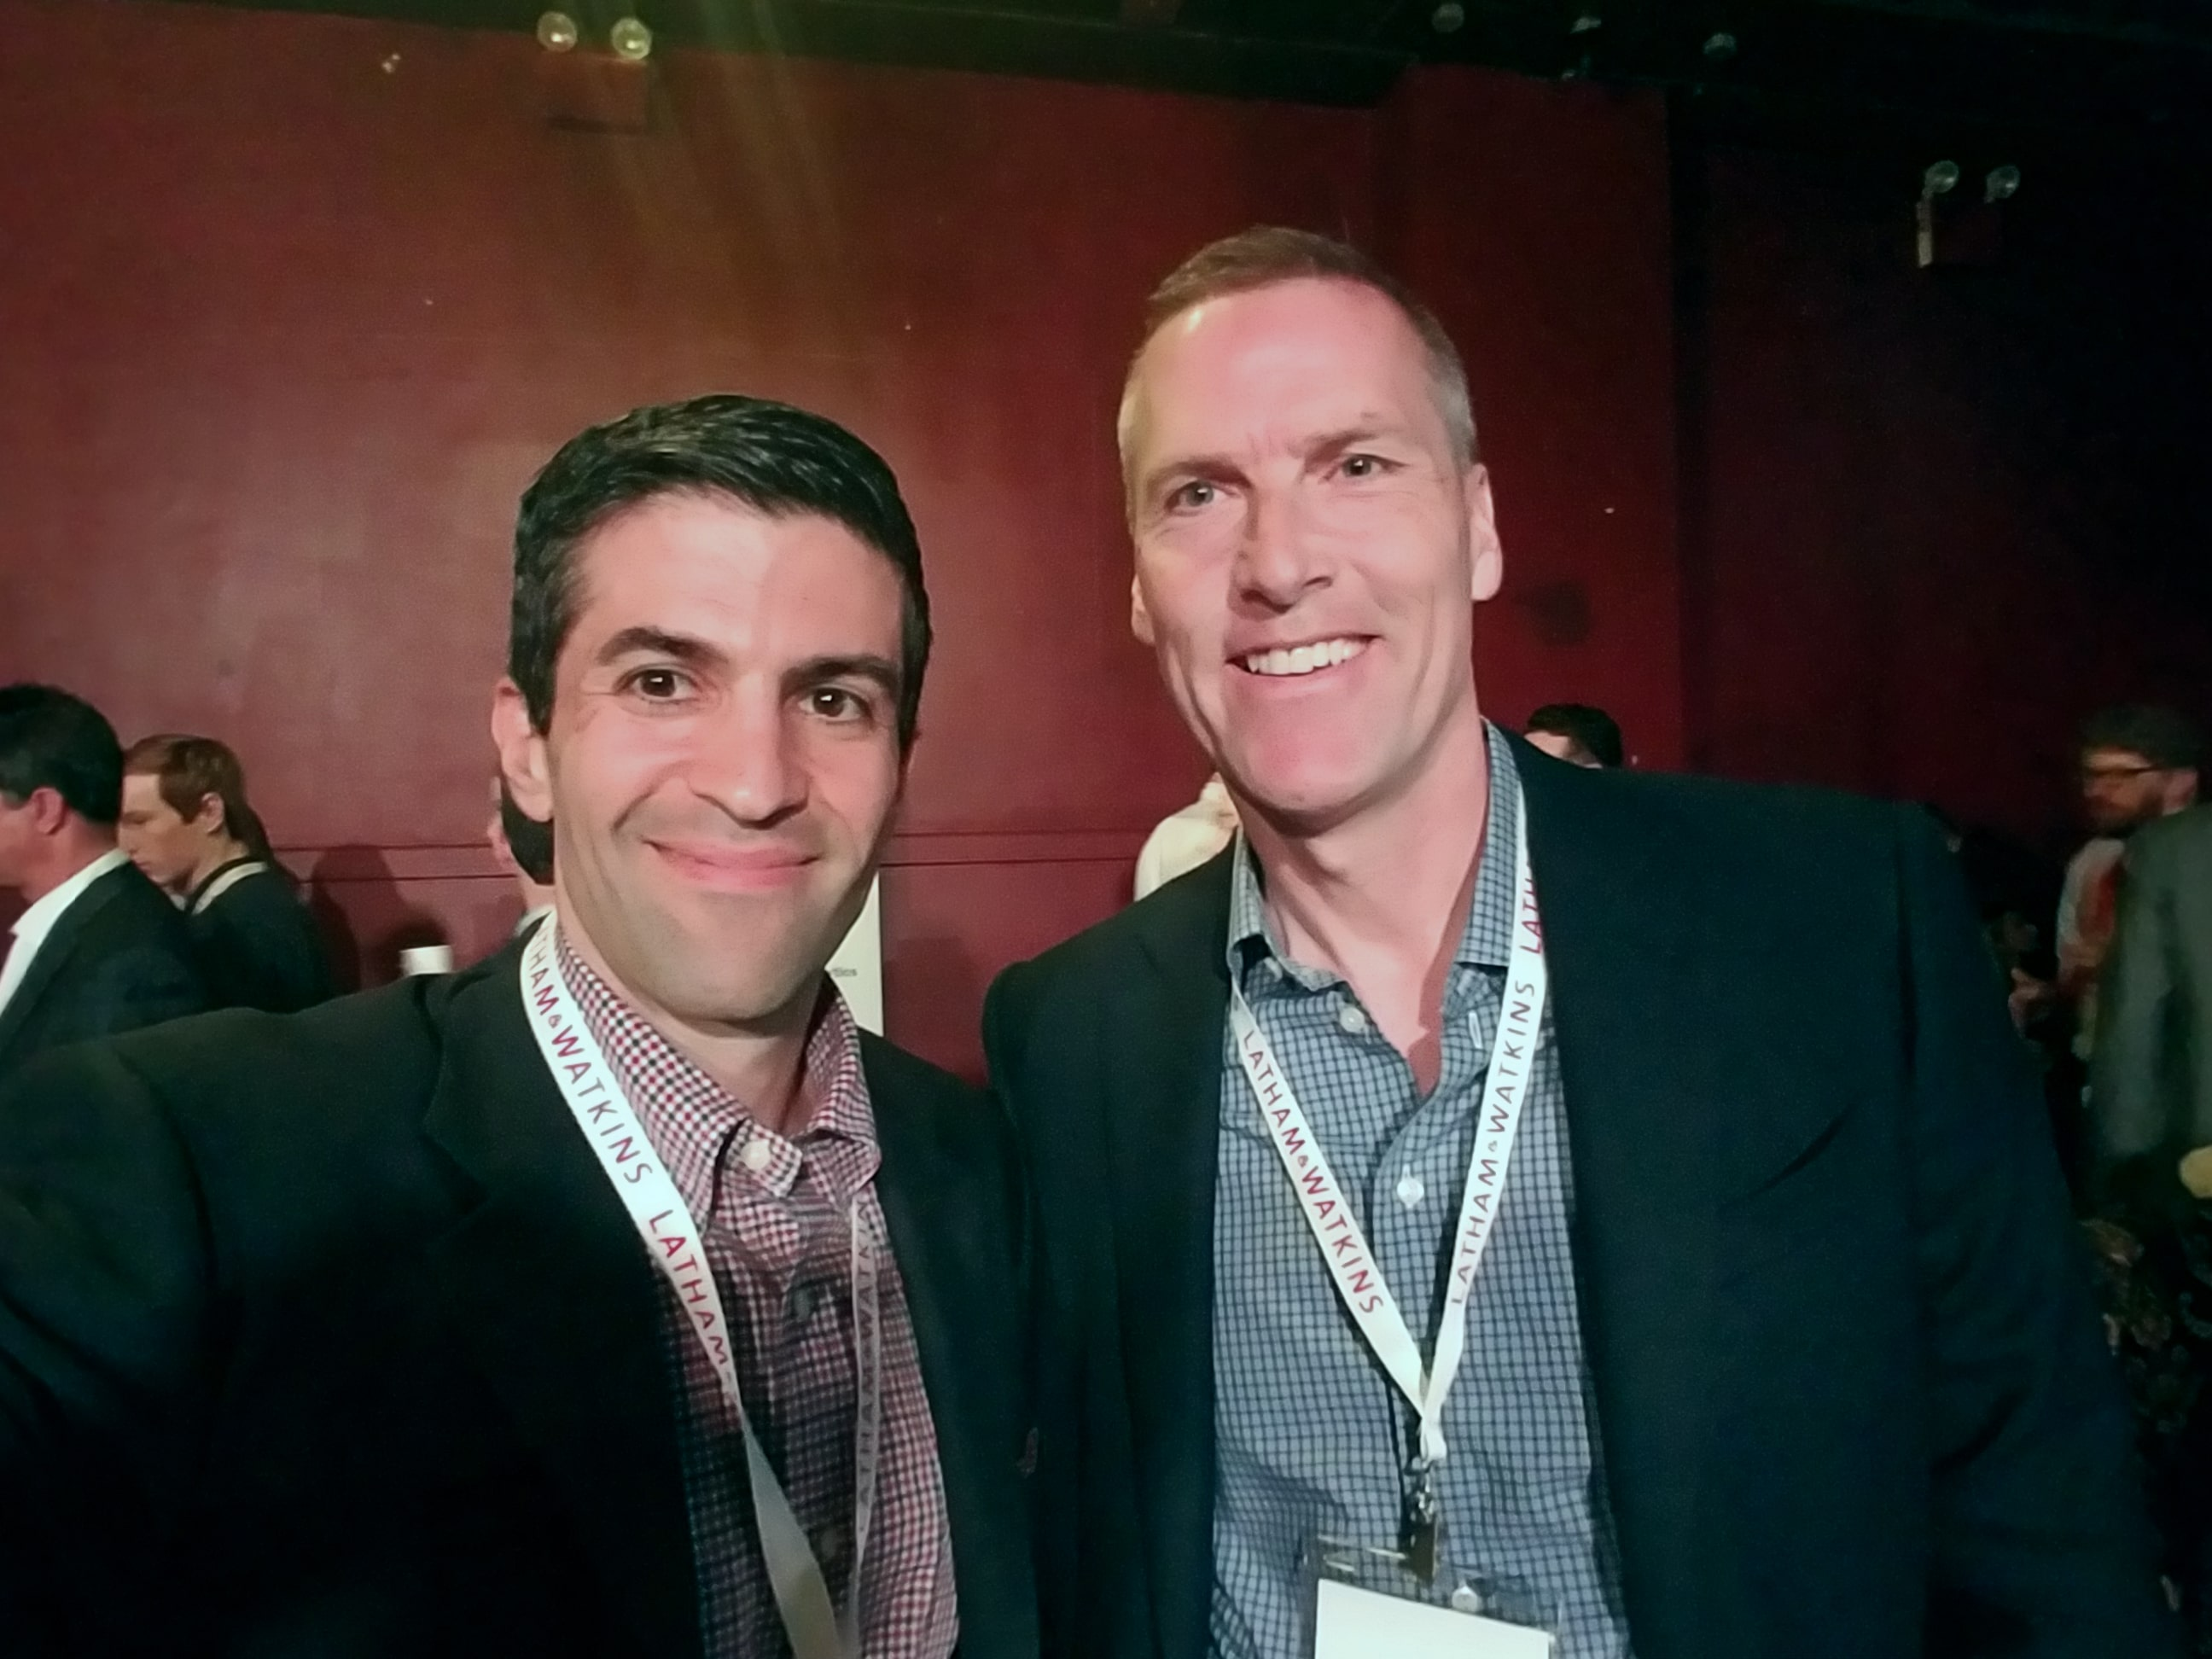 From left to right: Steven Hatzakis, Editor at FinanceMagnates.com and Tim Hockey, incoming CEO of TD Ameritrade. Selfie photo taken at Empire Startups Fintech NY event on April 26, 2016. Source: Steven Hatzakis